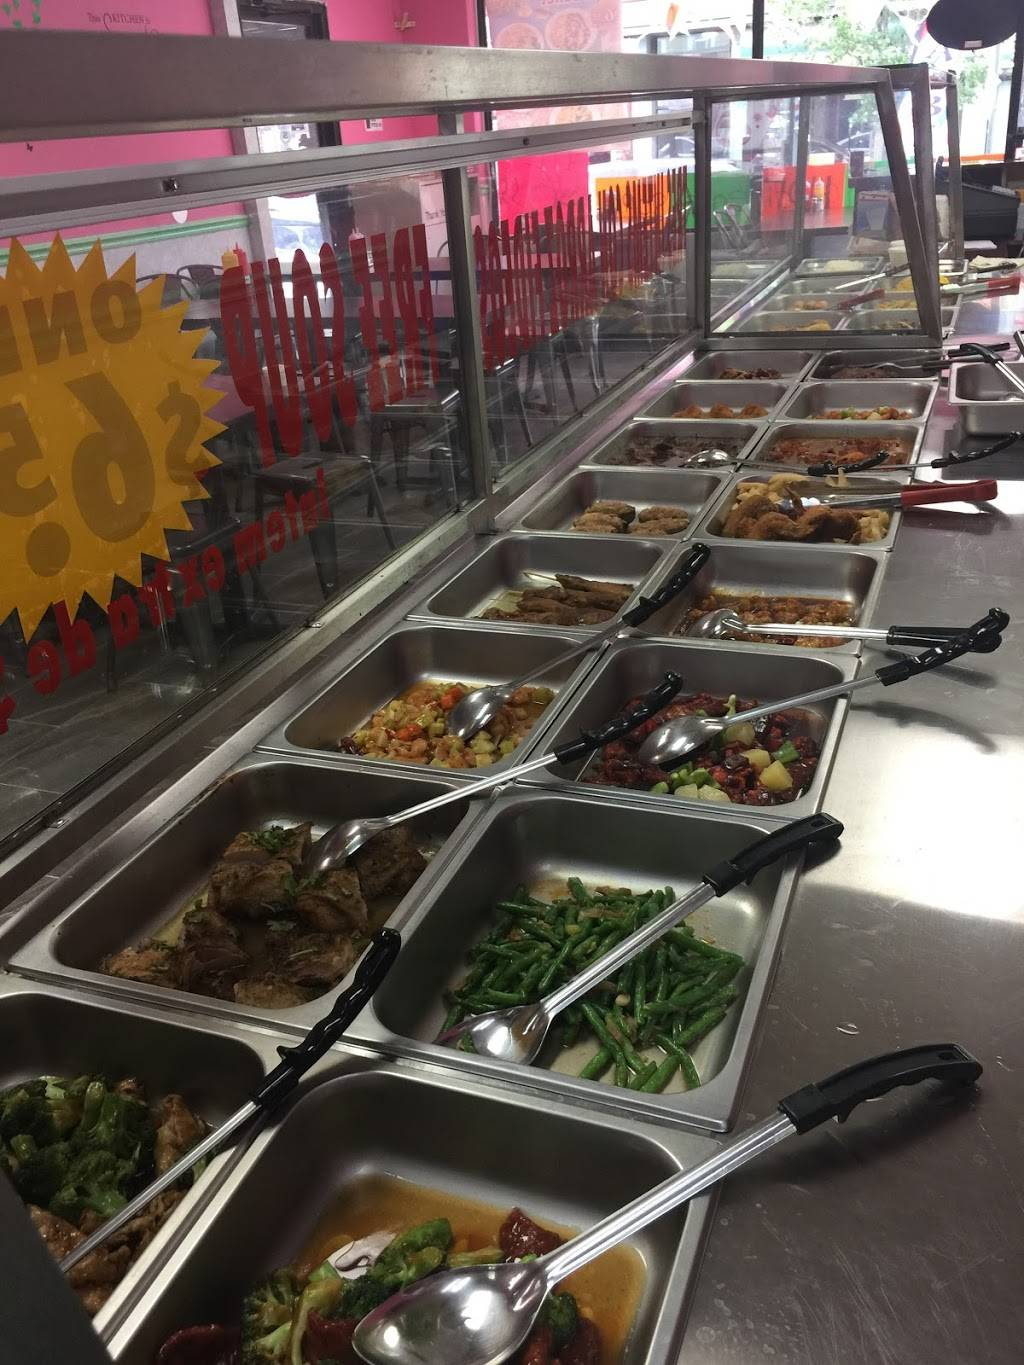 Hot Buffet -All you can eat & Buffet take out | restaurant | 2901 Bergenline Ave, Union City, NJ 07087, USA | 2018636704 OR +1 201-863-6704